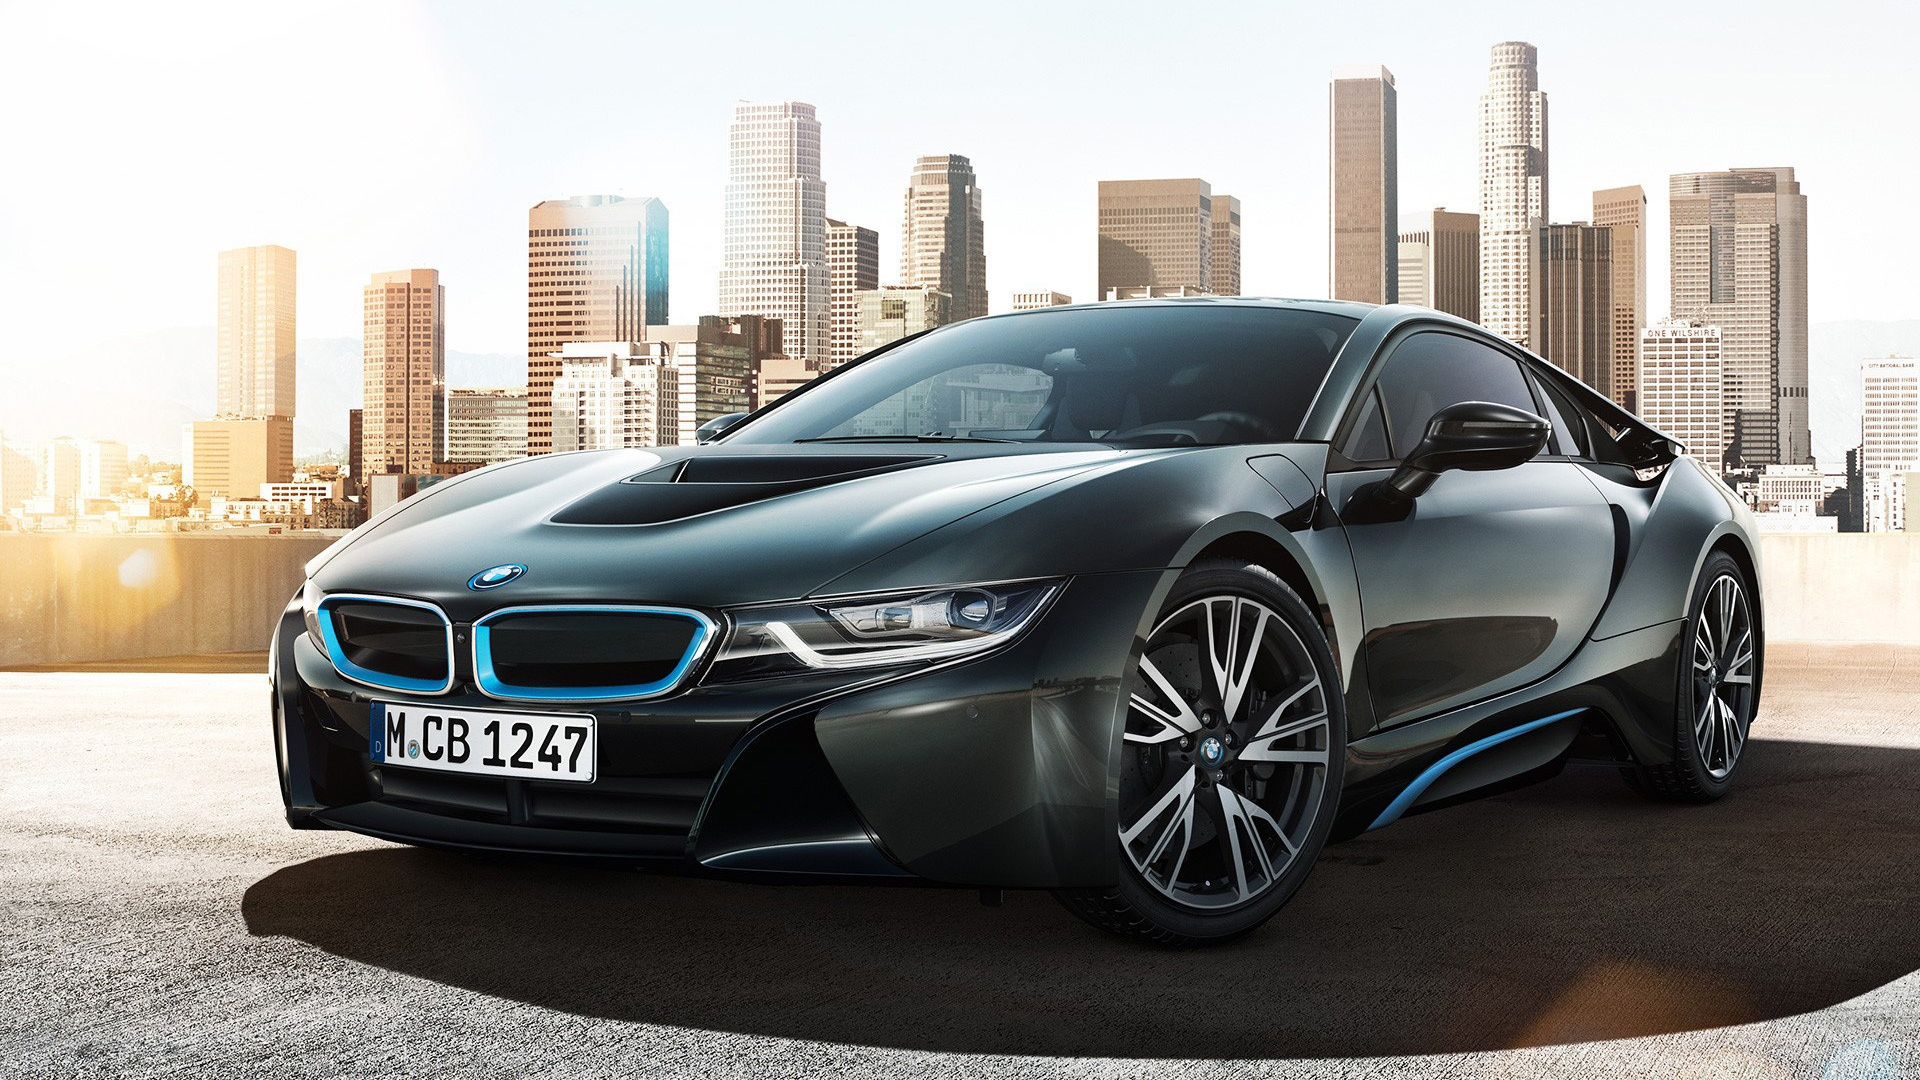 Bmw I8 Concept Wallpapers In Jpg Format For Free Download